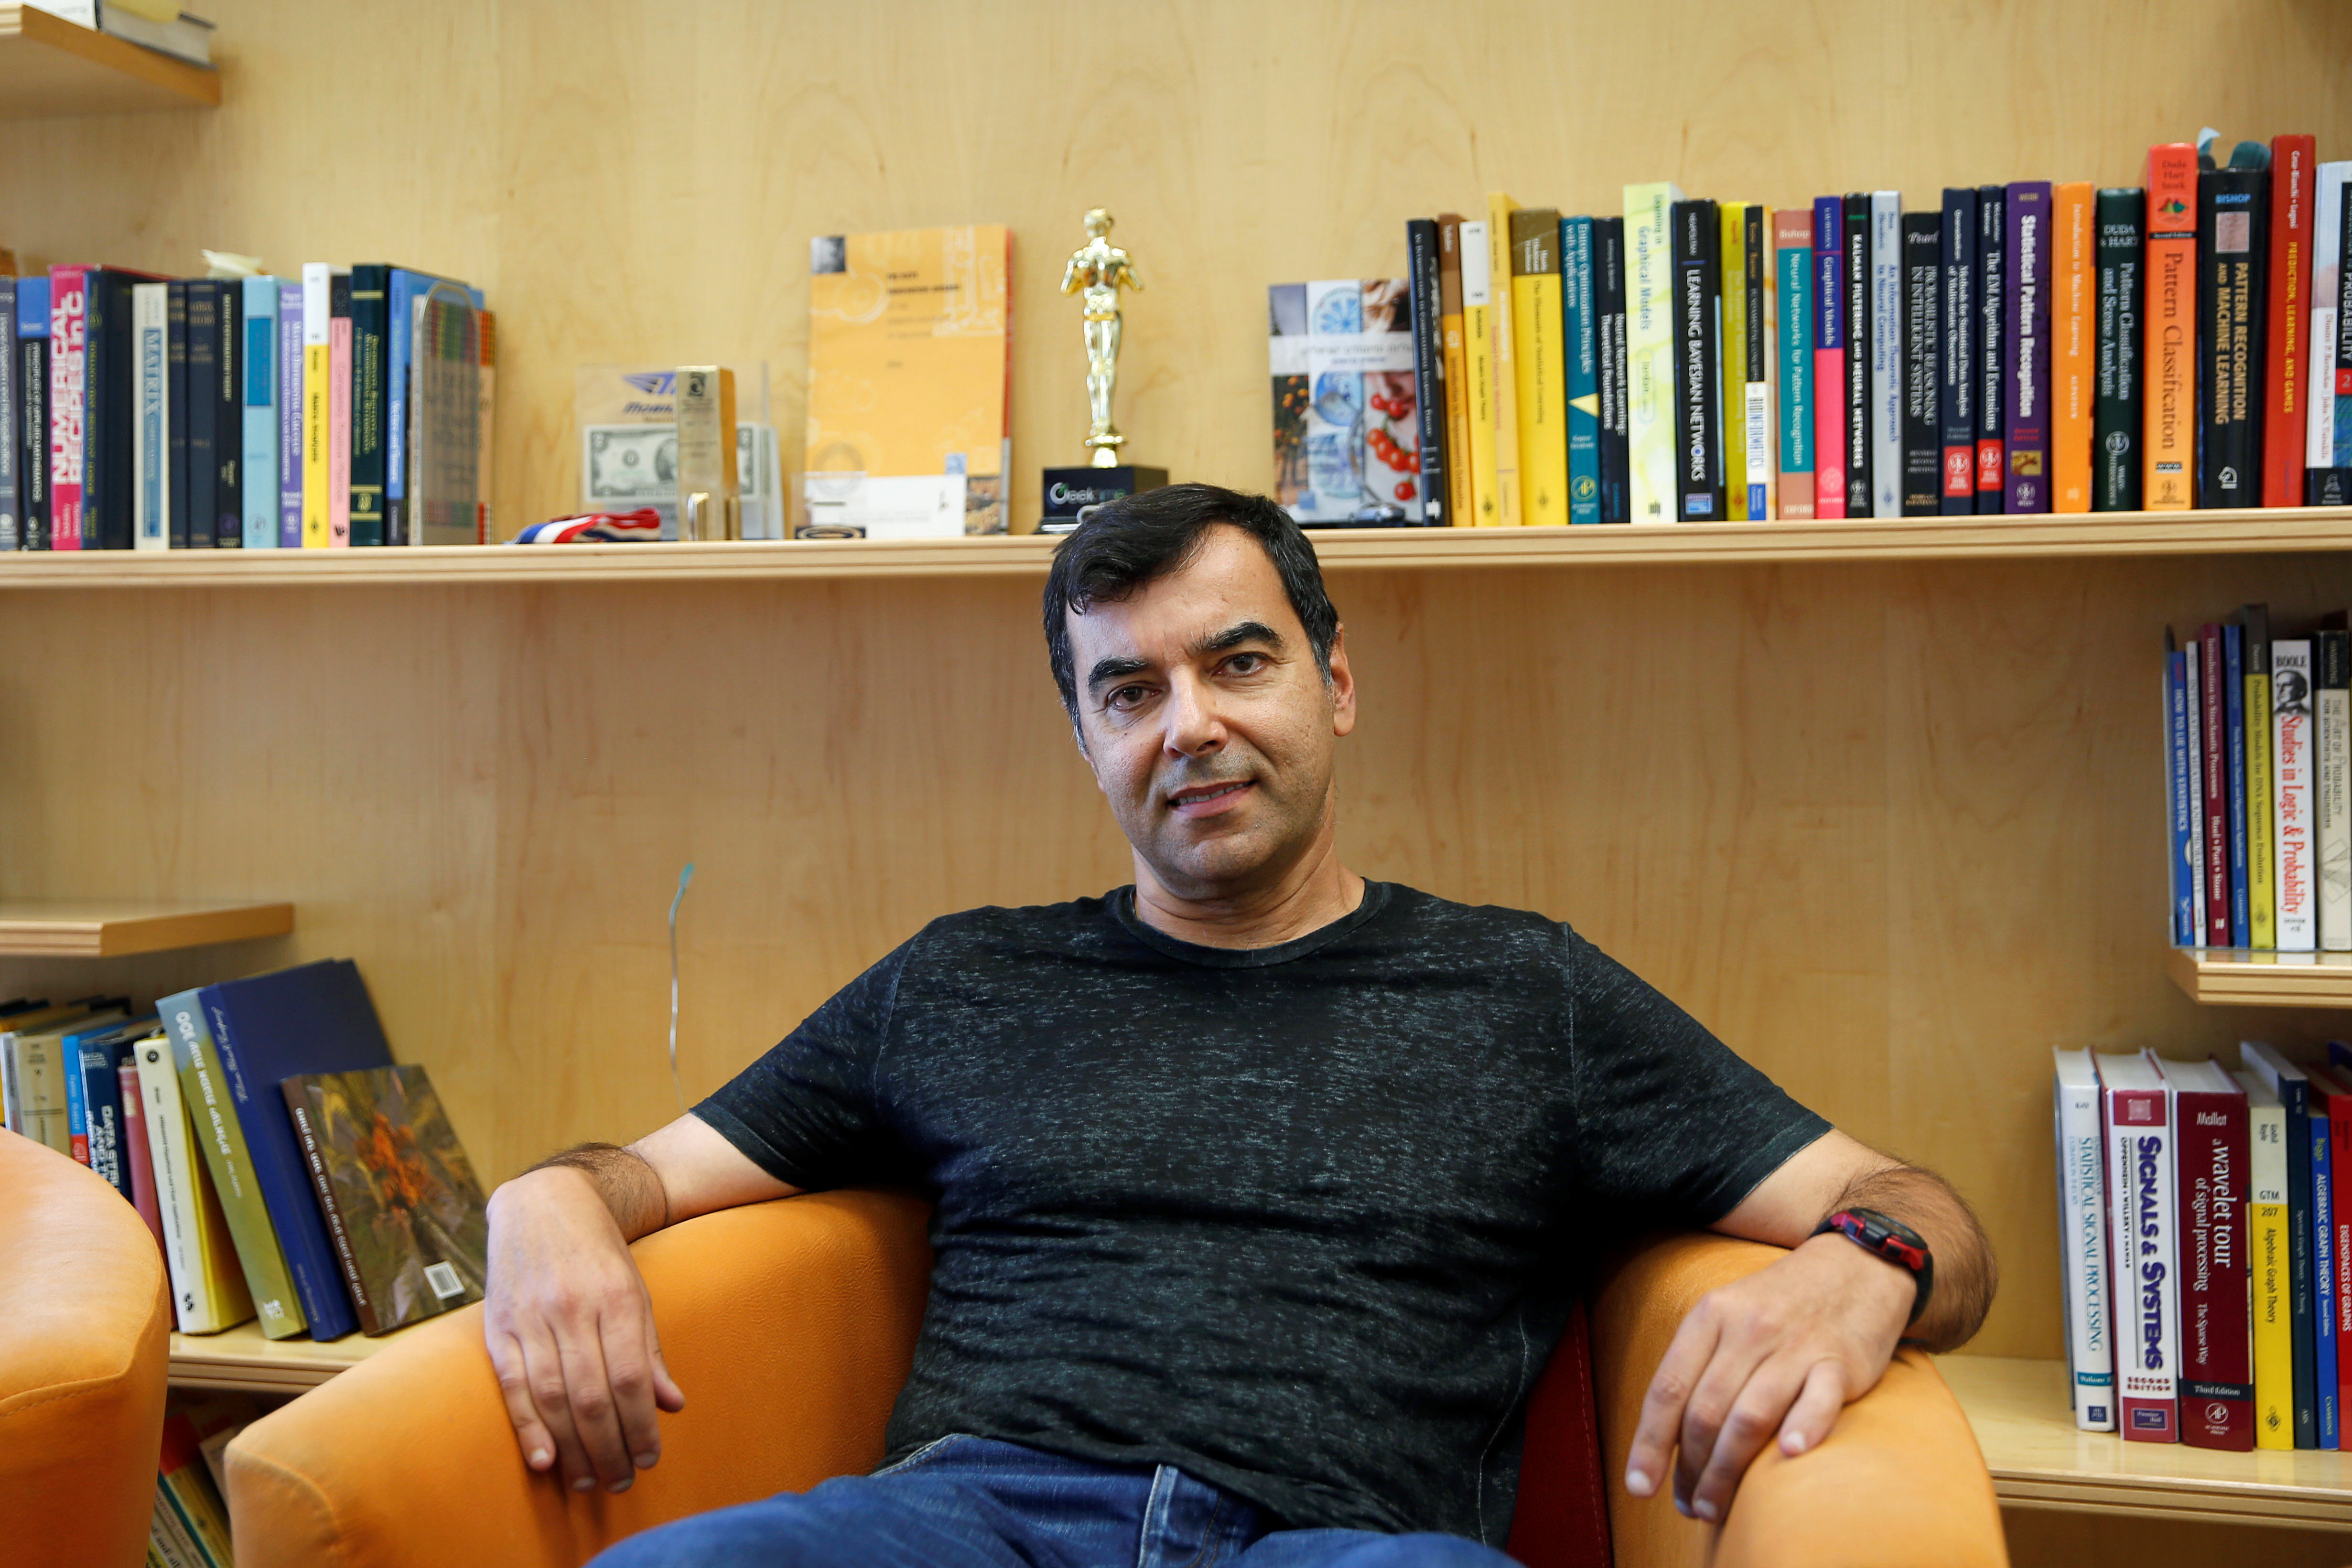 Chairman of Israeli driving assistant software maker Mobileye NV, Amnon Shashua, poses for a photograph at his office in Jerusalem